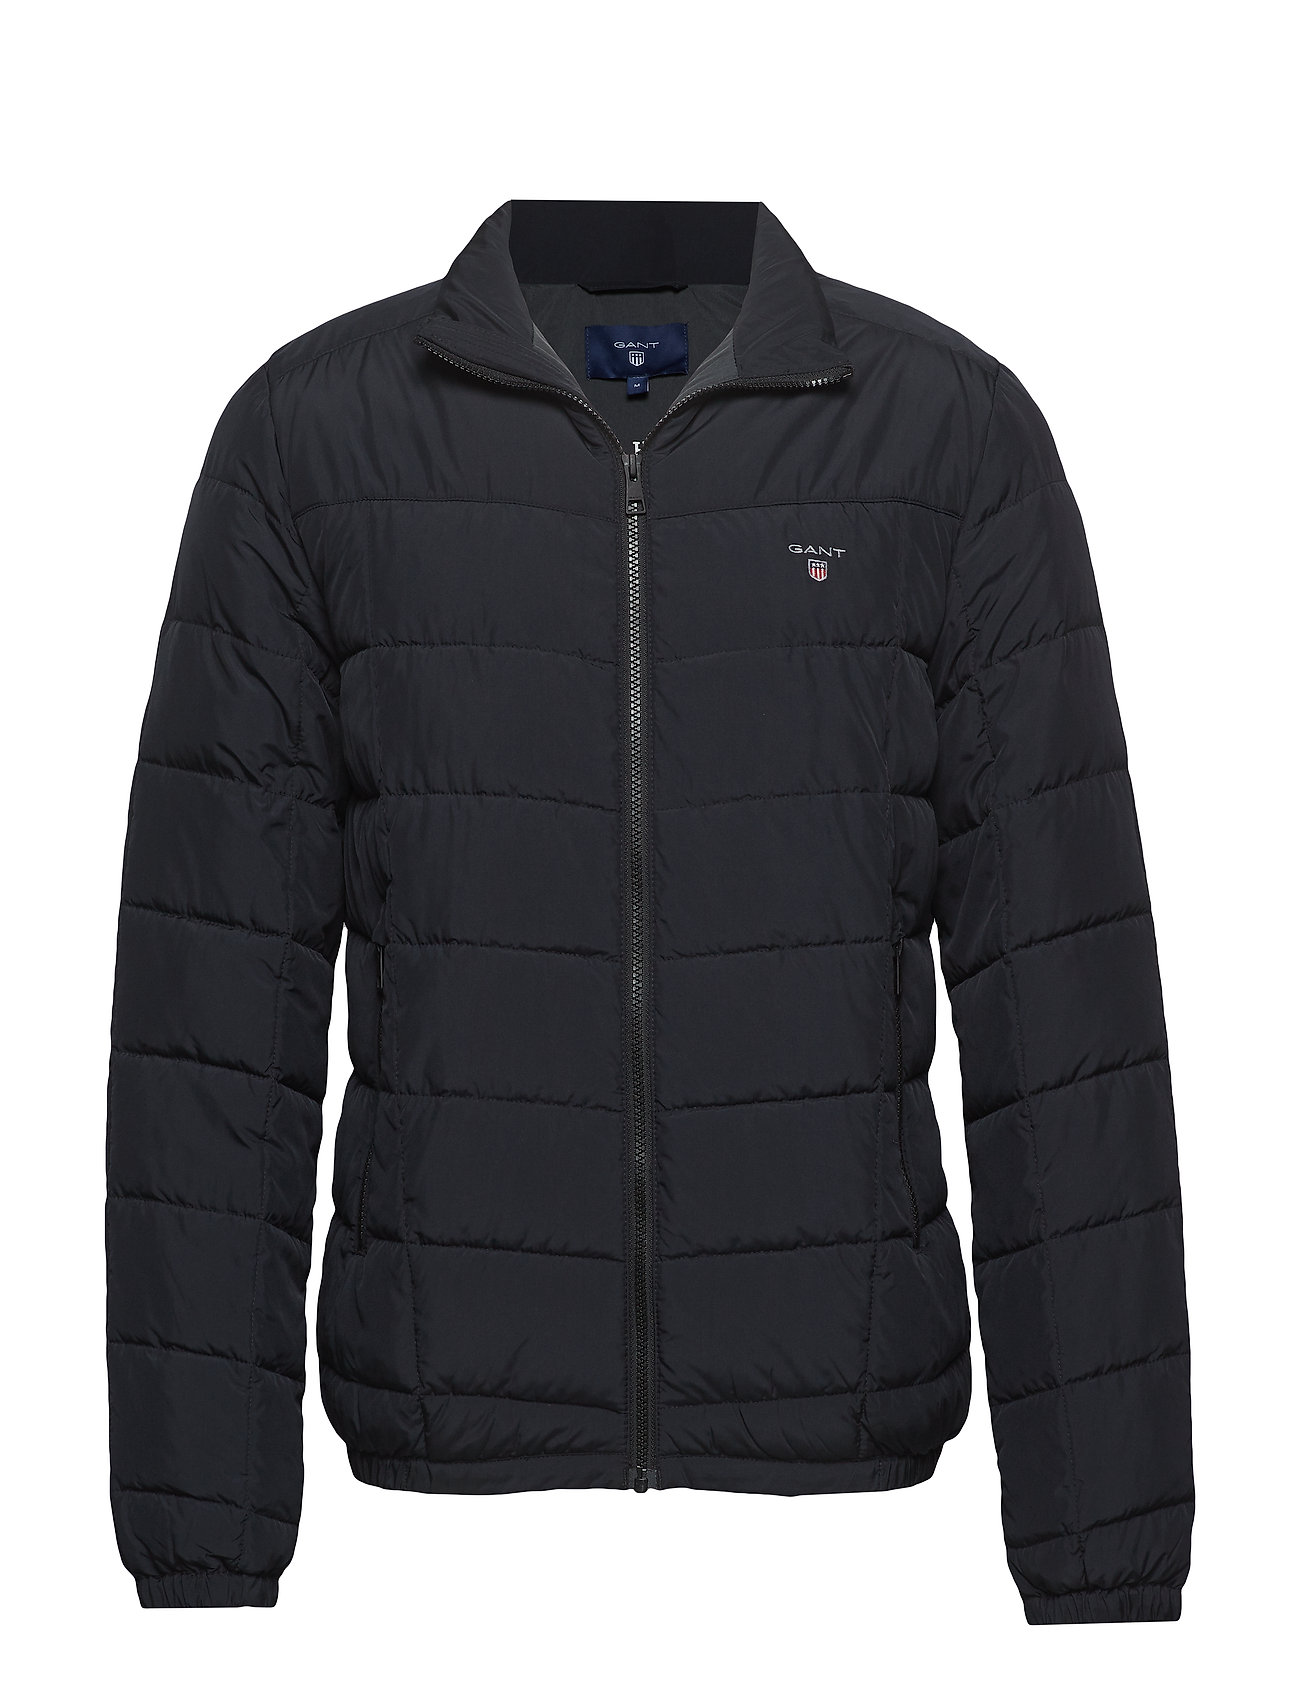 GANT O1. THE CLOUD JACKET